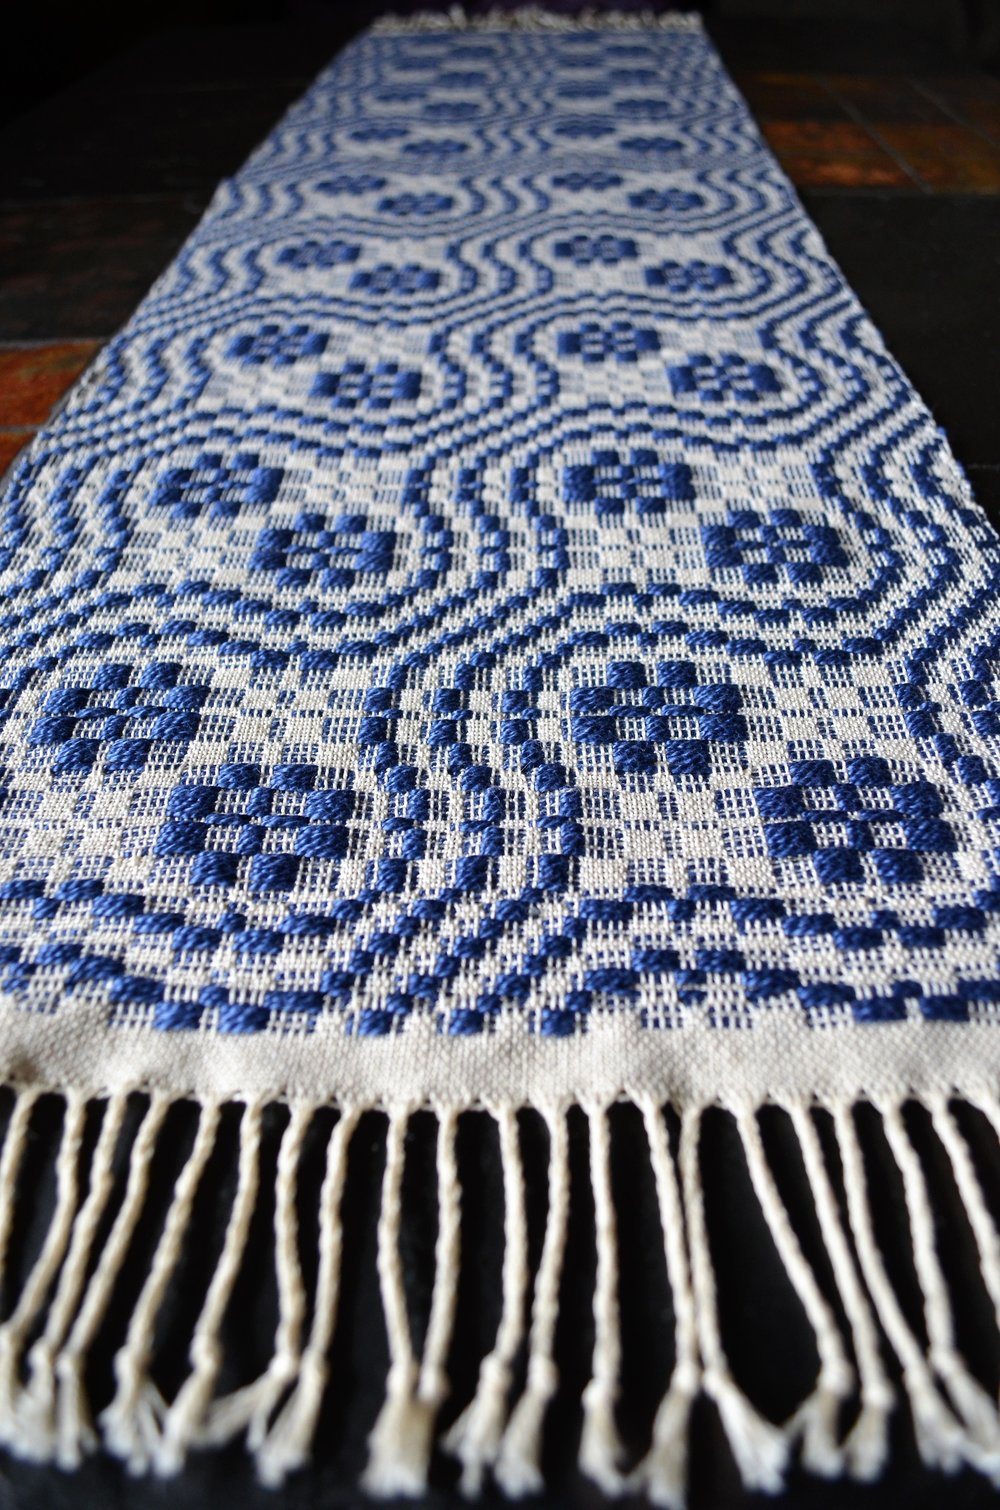 Handwoven overshot table runner / warporweft.com